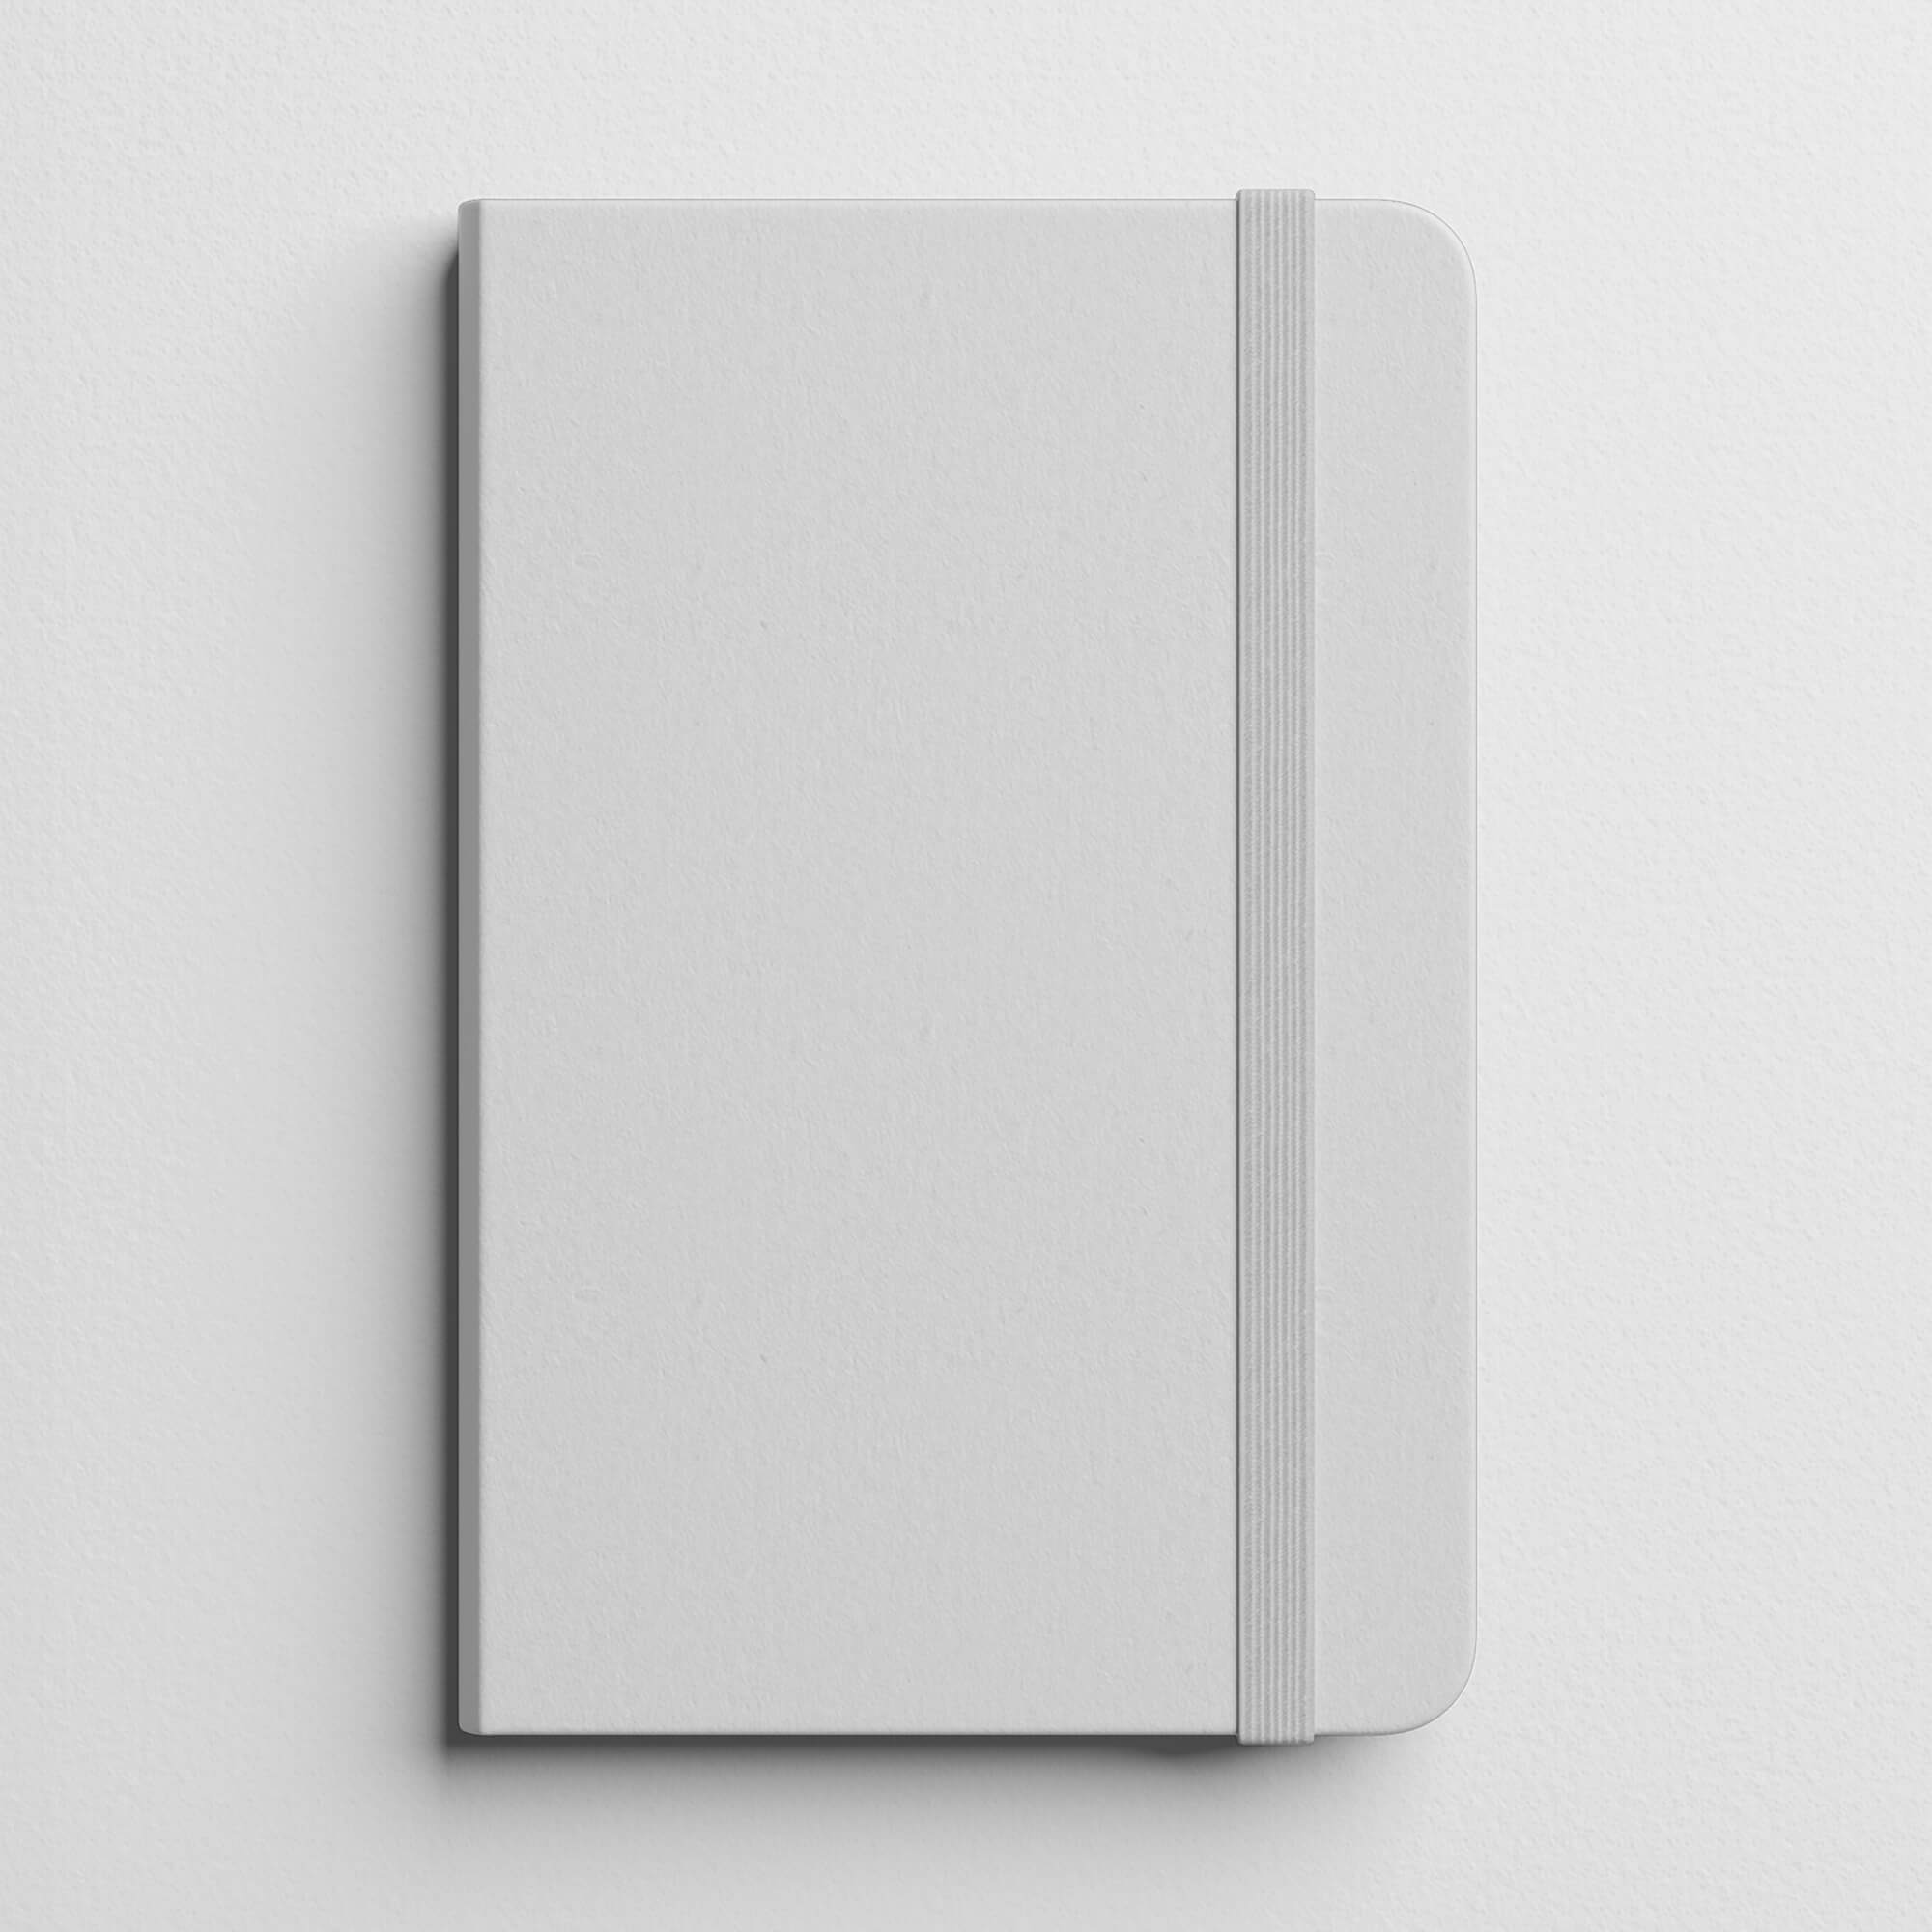 Blank Free Notebook Cover Mockup PSD Template